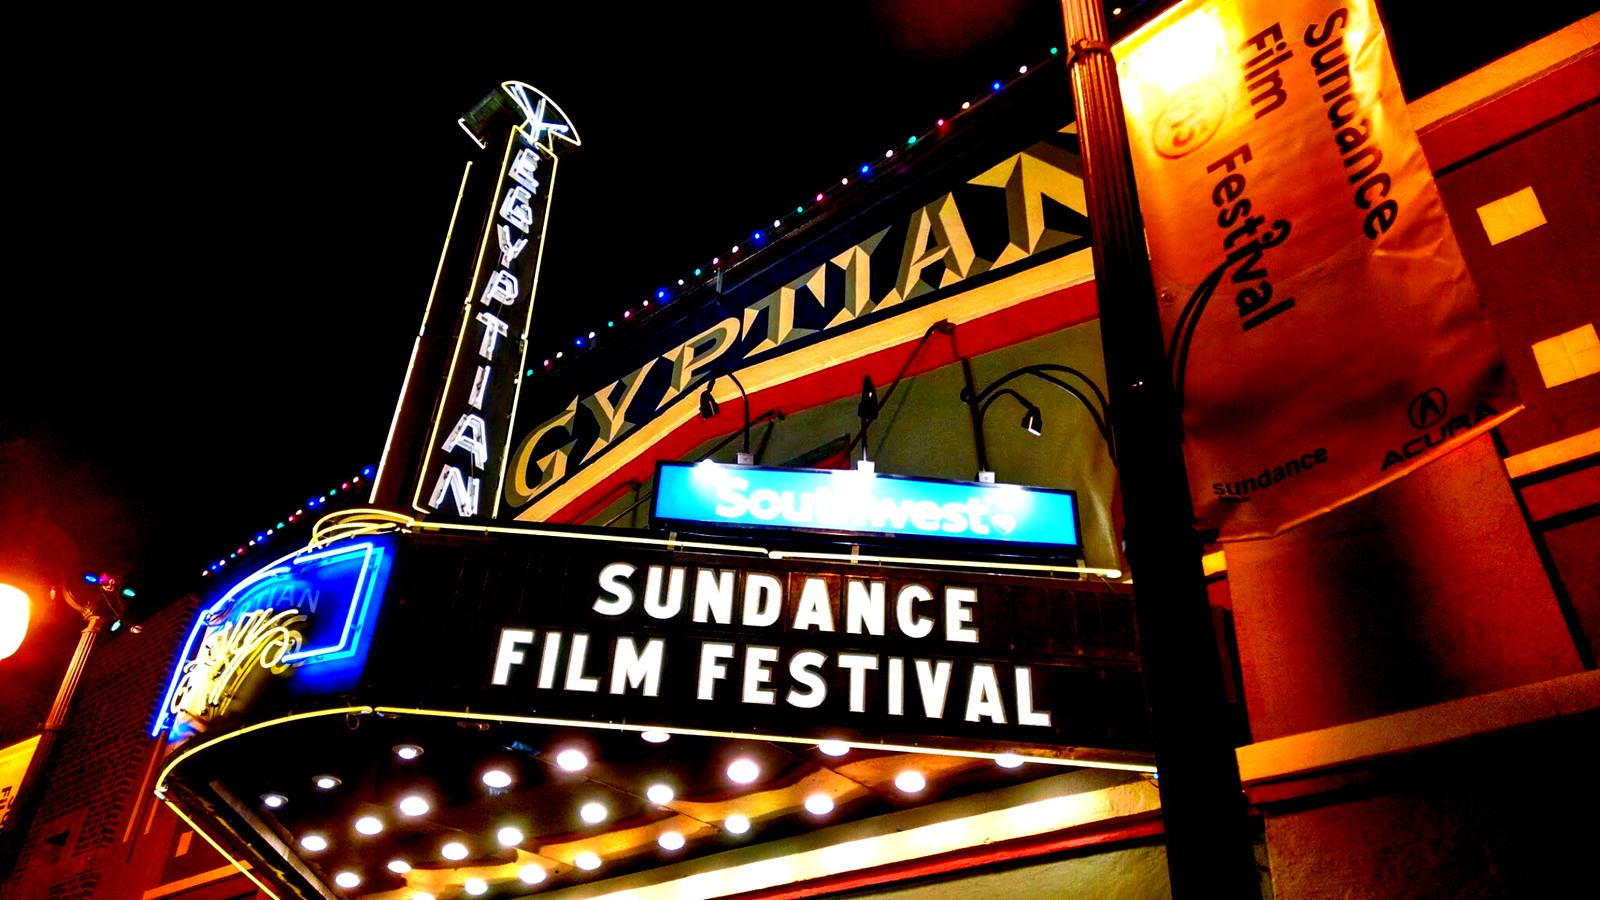 Egyptian Theatre lit up at night during Sundance